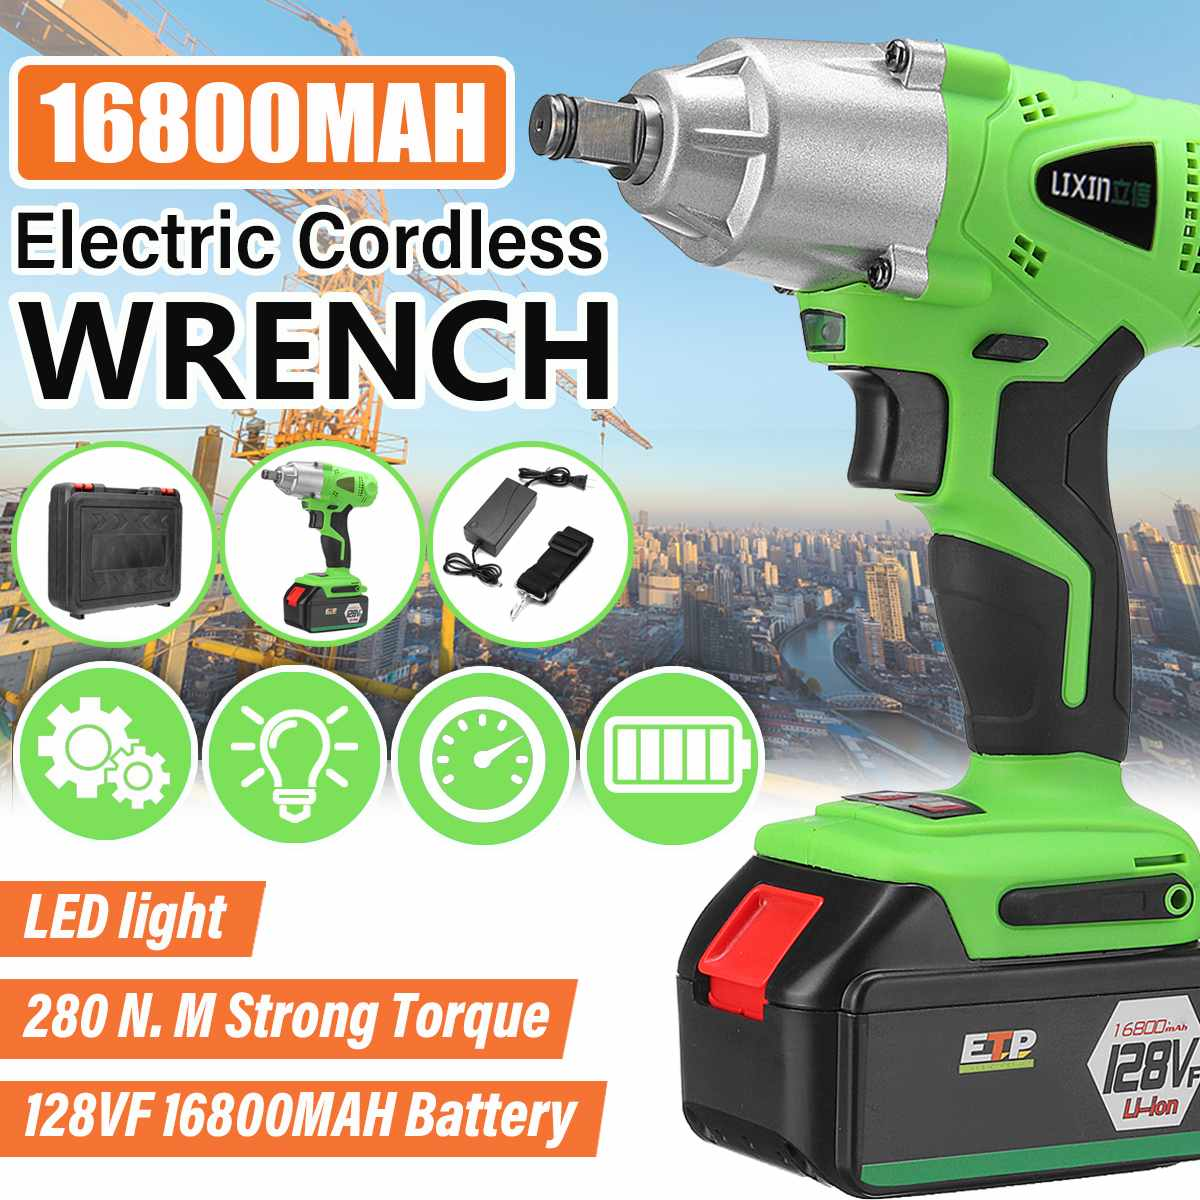 Brushless Electric Impact Socket Wrench Cordless Rechargeable Lithium Battery W/ LED Light Car Tire Wheel Hand Drill Power ToolBrushless Electric Impact Socket Wrench Cordless Rechargeable Lithium Battery W/ LED Light Car Tire Wheel Hand Drill Power Tool